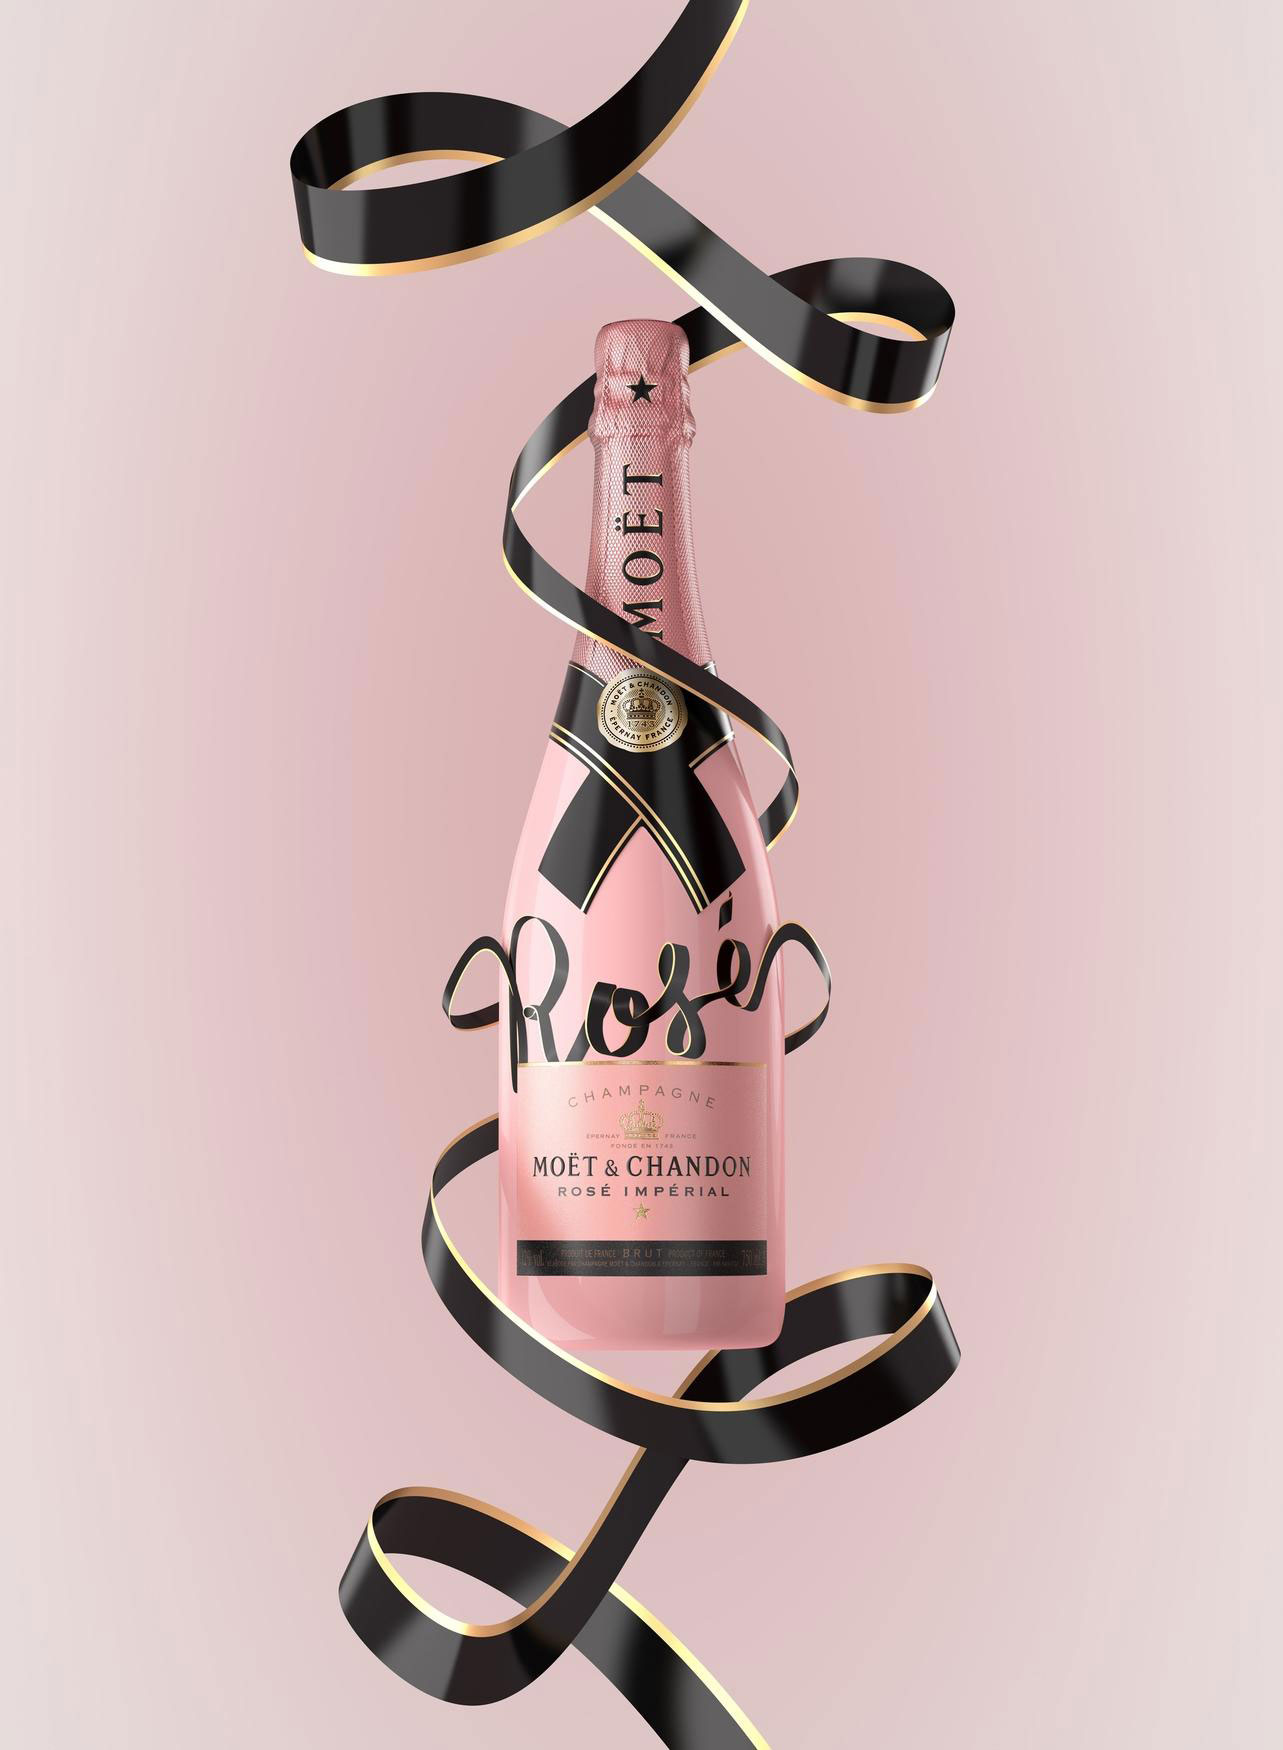 Moët & Chandon Impérial Rosé Mother's Day Gifts for the Foodie in Your Life - Toast mom this Mother's Day with some bubbly from Moët & Chandon. The lush lable is a favorite of stars such as Kendall Jenner and Emma Stone, and the newly released, limited-edition Living Ties bottle is a classy gift she'll love.